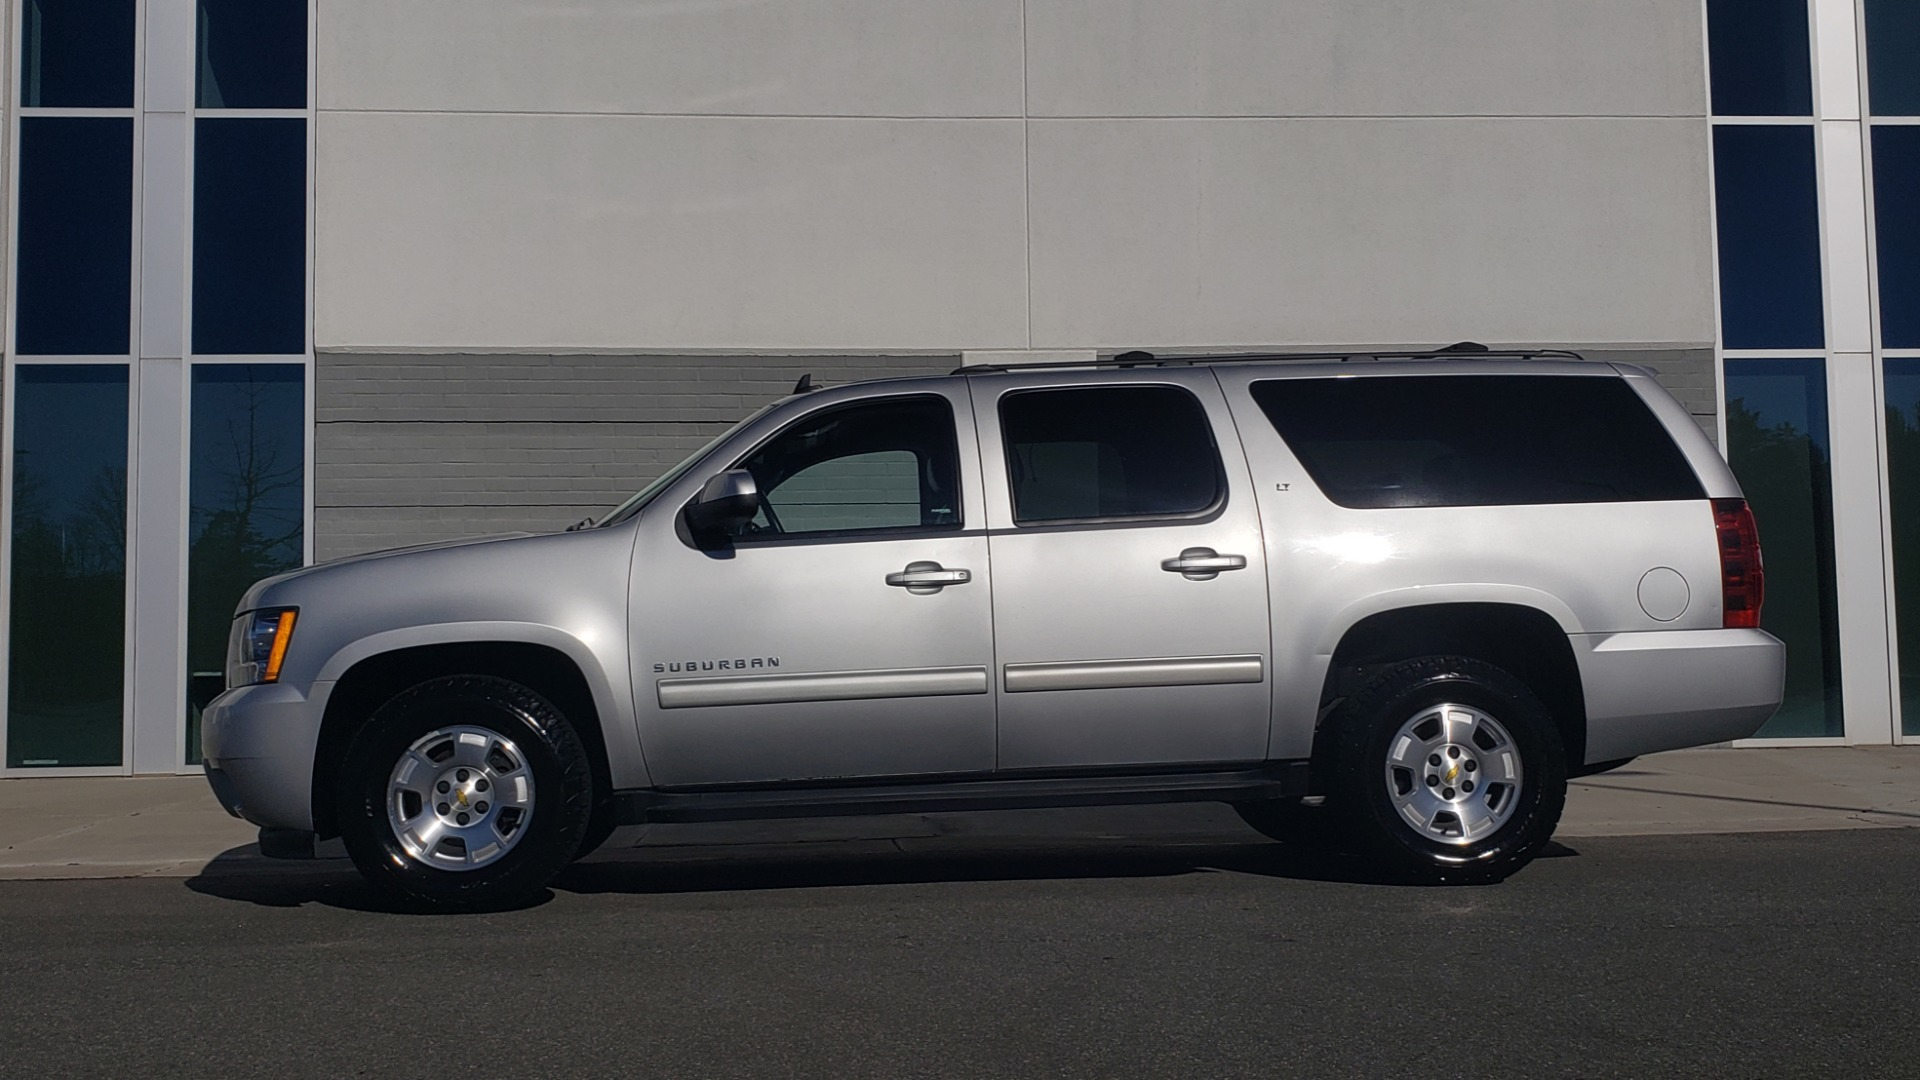 Used 2013 Chevrolet SUBURBAN LT / 2WD / 5.3L V8 / 6-SPD AUTO / LEATHER 3-ROW SEATS for sale Sold at Formula Imports in Charlotte NC 28227 4